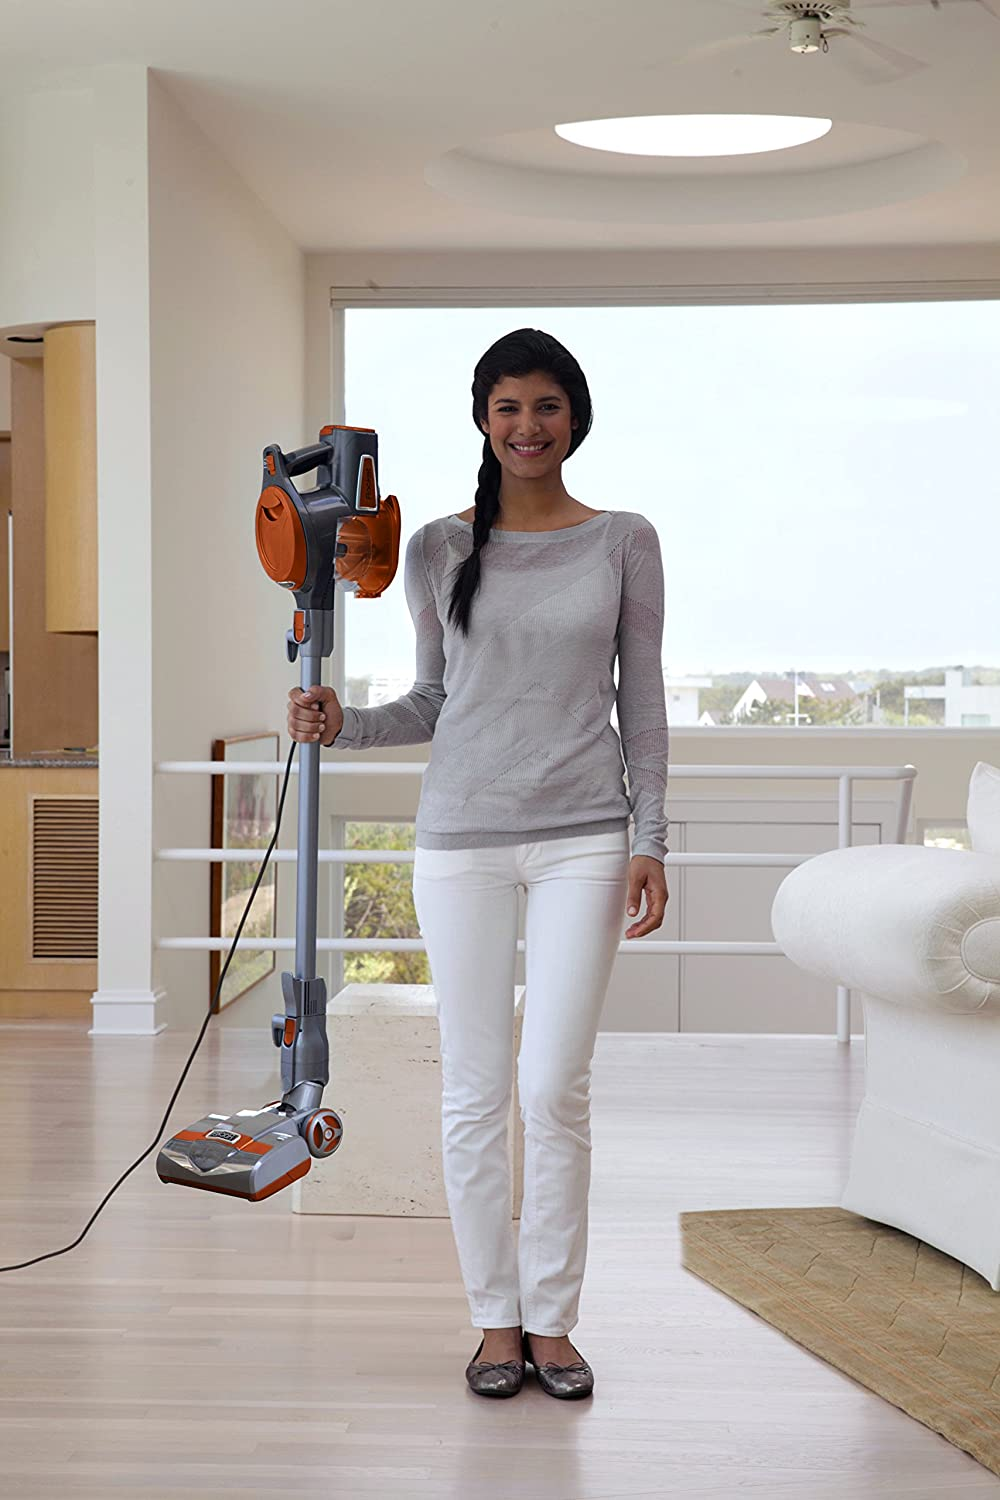 Shark Rocket-Best Bagless Vacuum for Carpet 2021